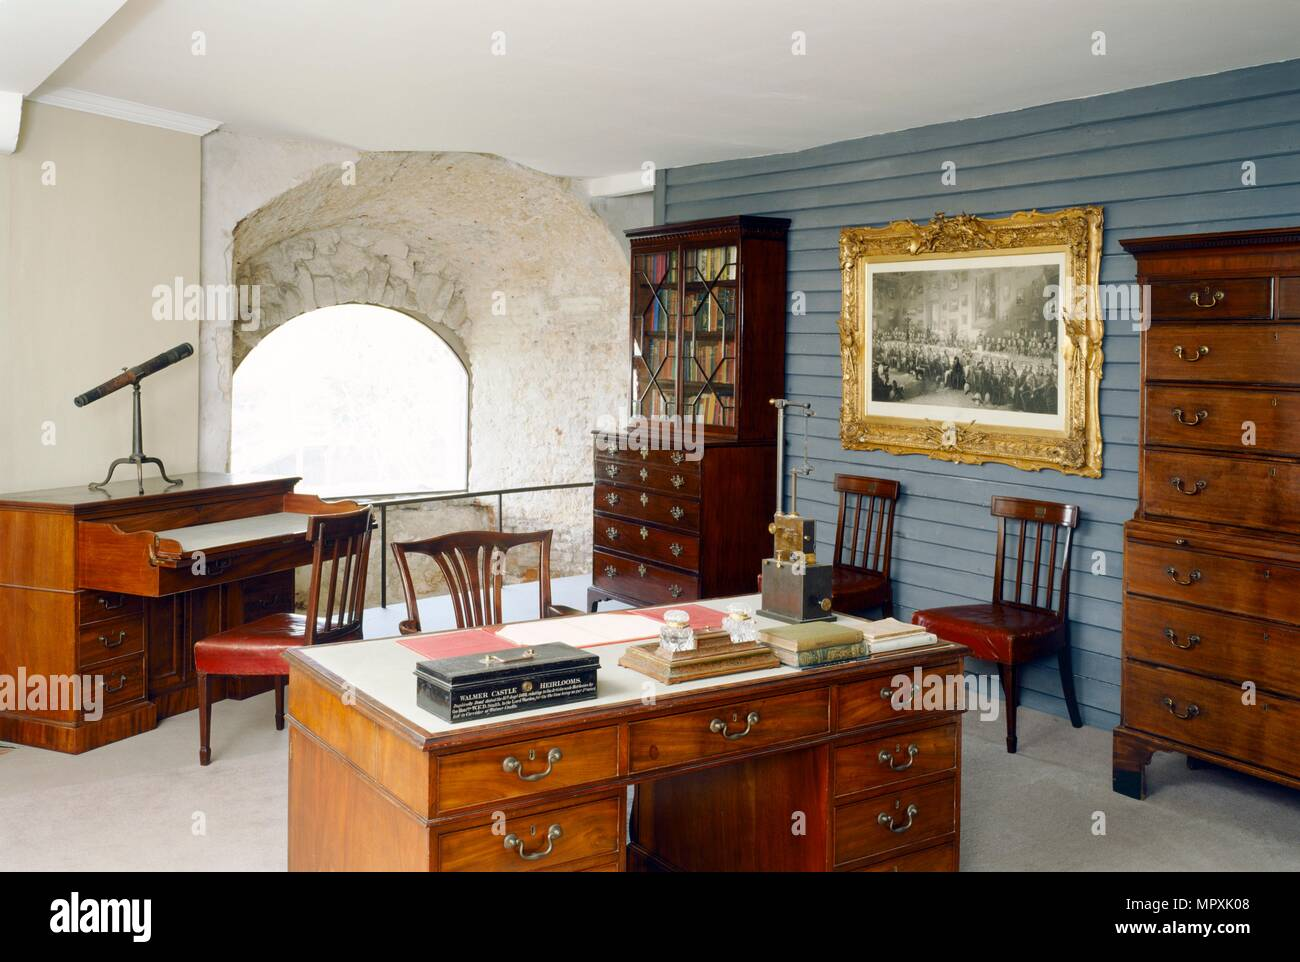 The Willingdon Room, Walmer Castle, Walmer, Kent, c2000-c2017. Artist: Jonathan Bailey. - Stock Image